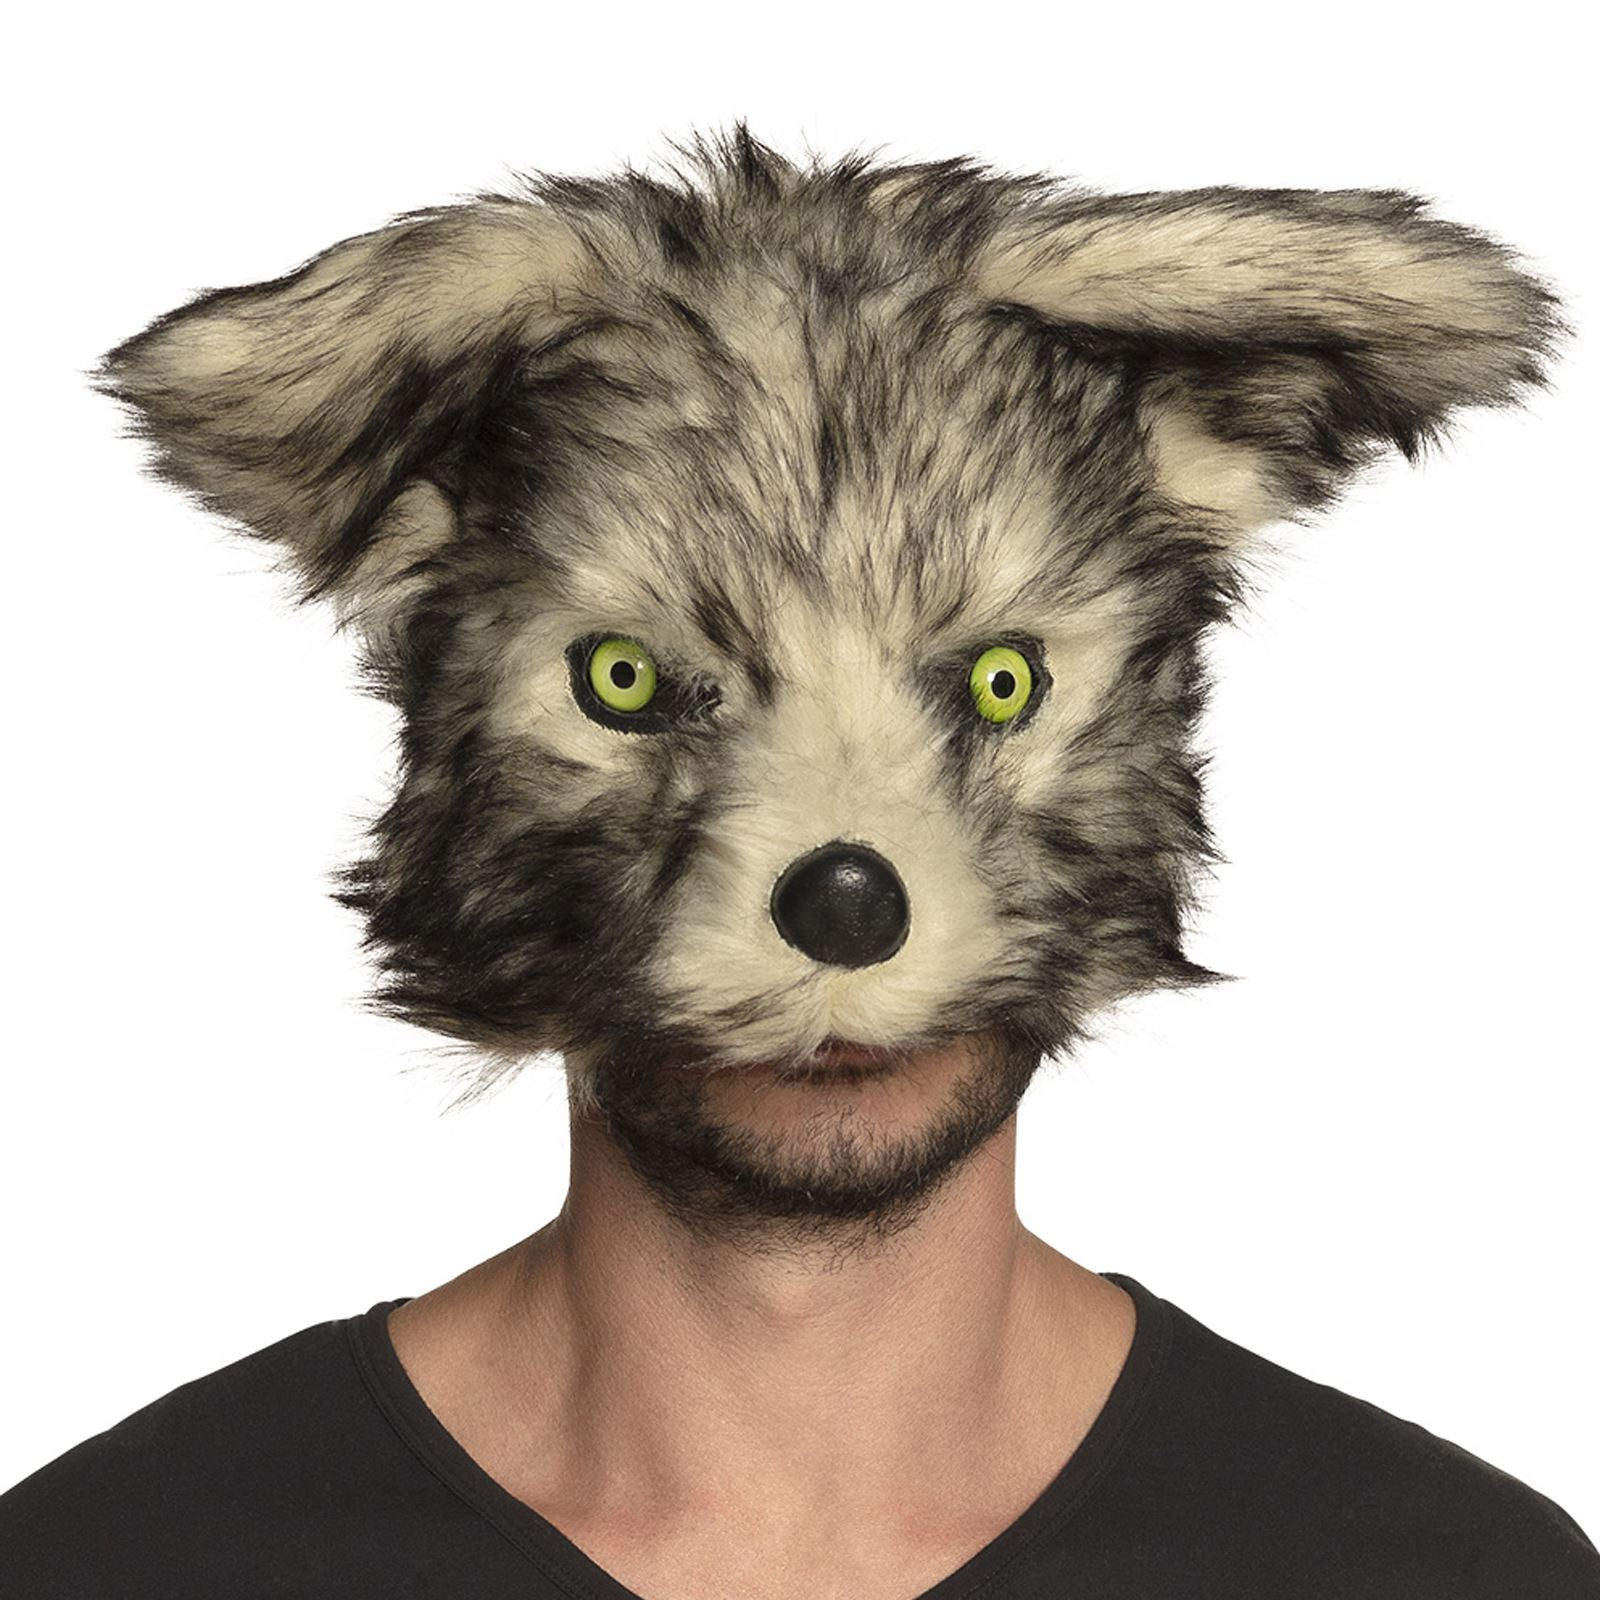 Fancy Party Accessory Wildlife Animal Book Week Costume Face Mask With Sound UK